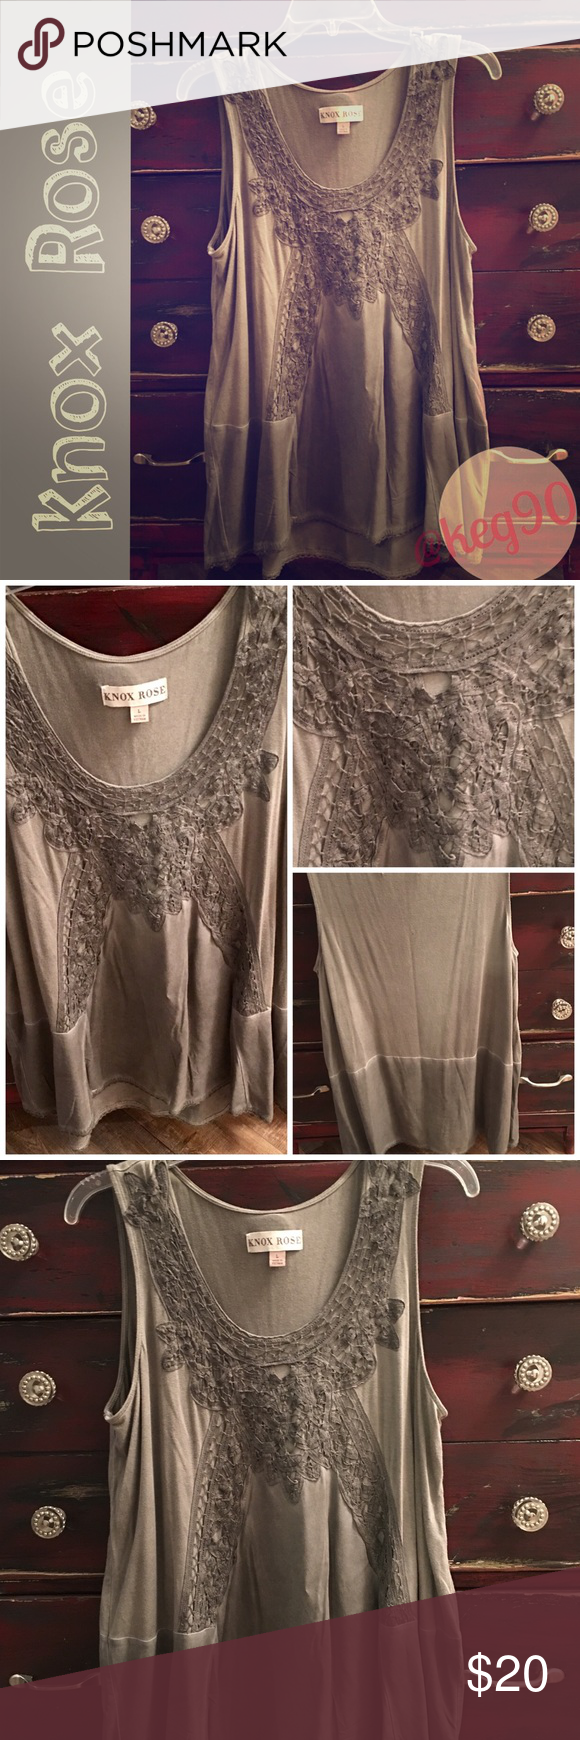 Knox Rose oversized detailed top See pics for this ...